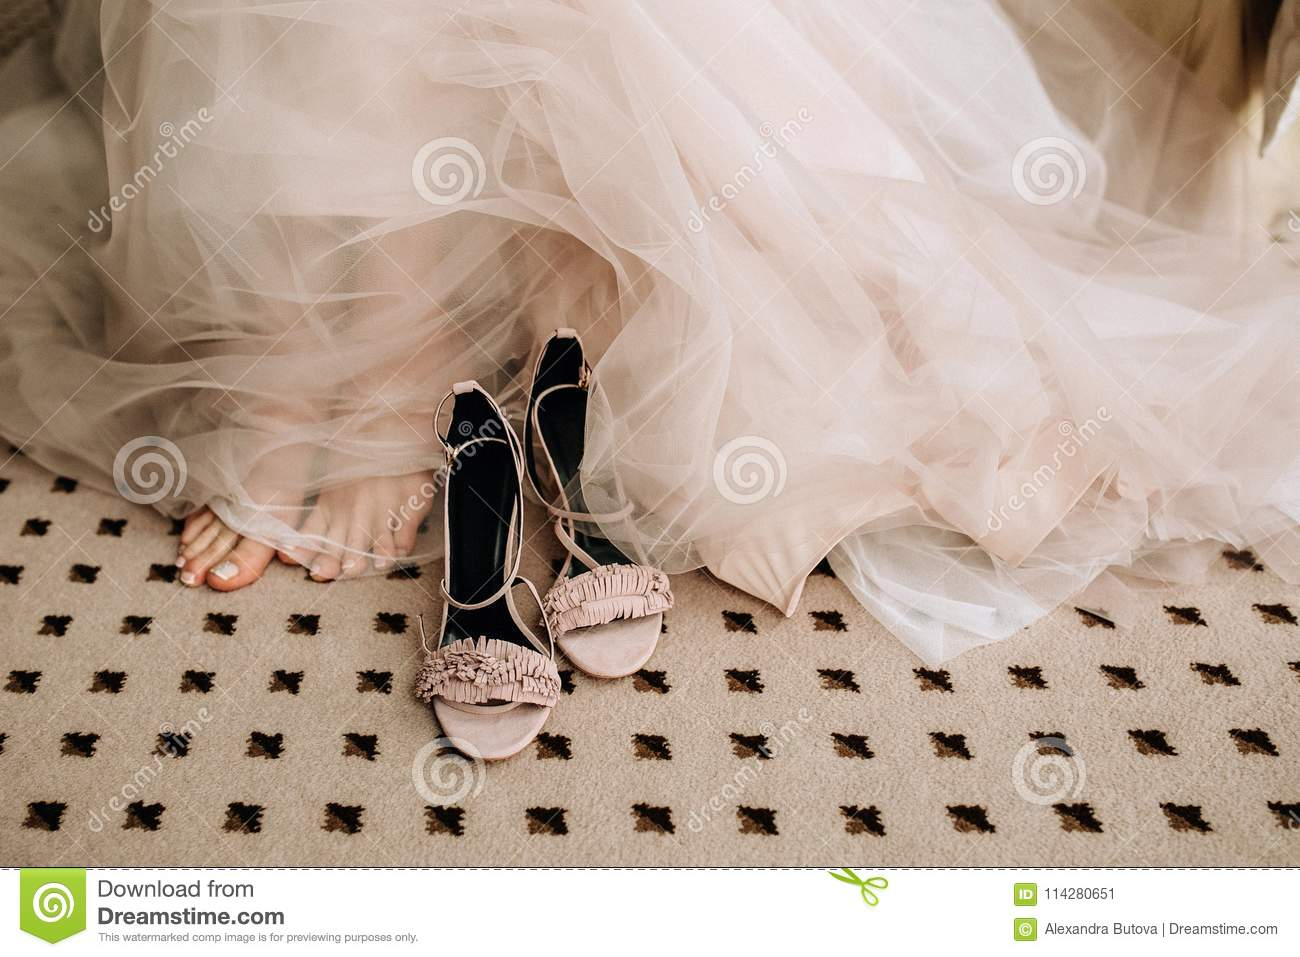 f6be7916f3dd9a Pink elegant shoes of the bride`s barefoot on the floor next to the feet  and a wedding gentle dress made of translucent fabric